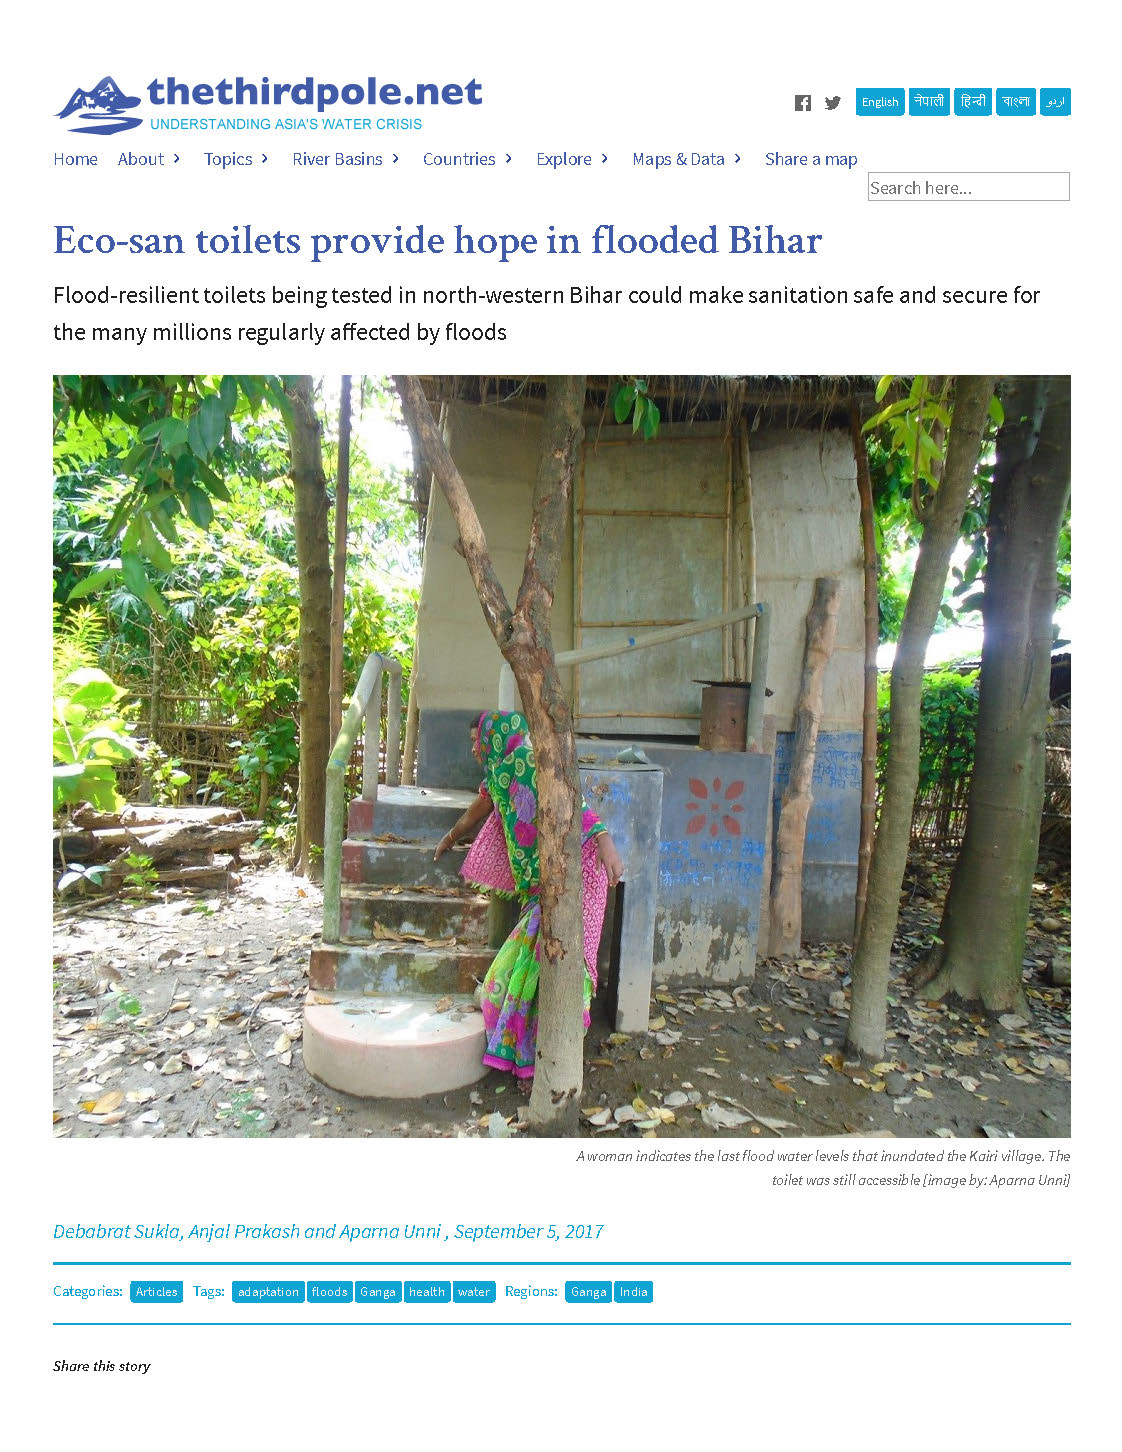 Front page - Article on eco-san toilets in Bihar